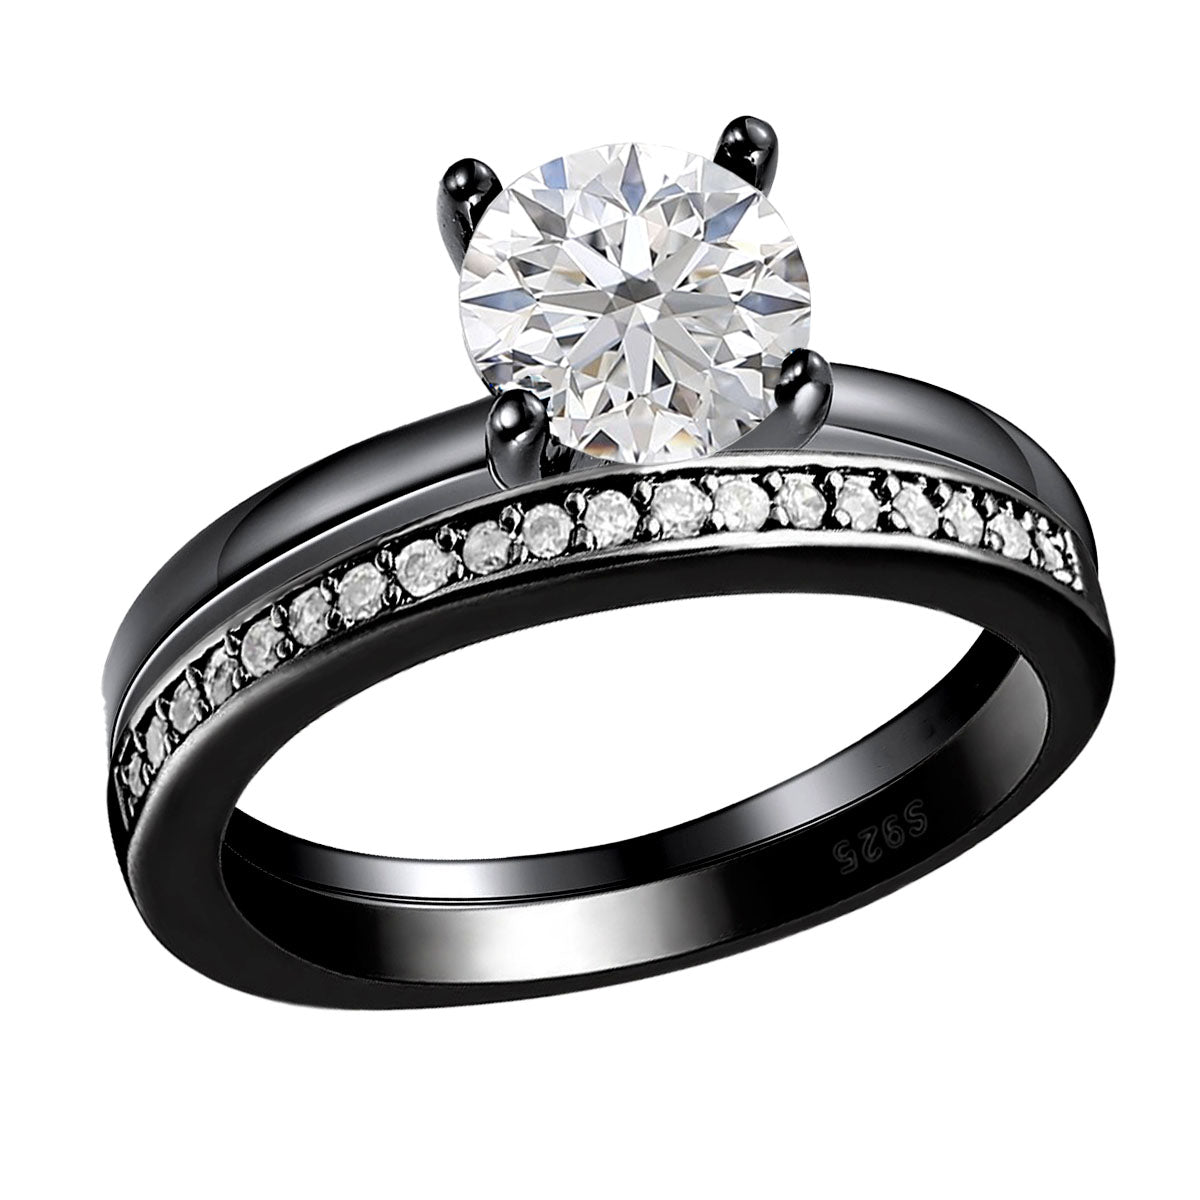 Envy Sterling Silver Engagement Ring Round Hearts And Arrows Cut 1.5 Ct Clear or Black Cubic Zirconia Bridal Promise Wedding Jewelry for Women by Ginger Lyne Fashion Jewelry